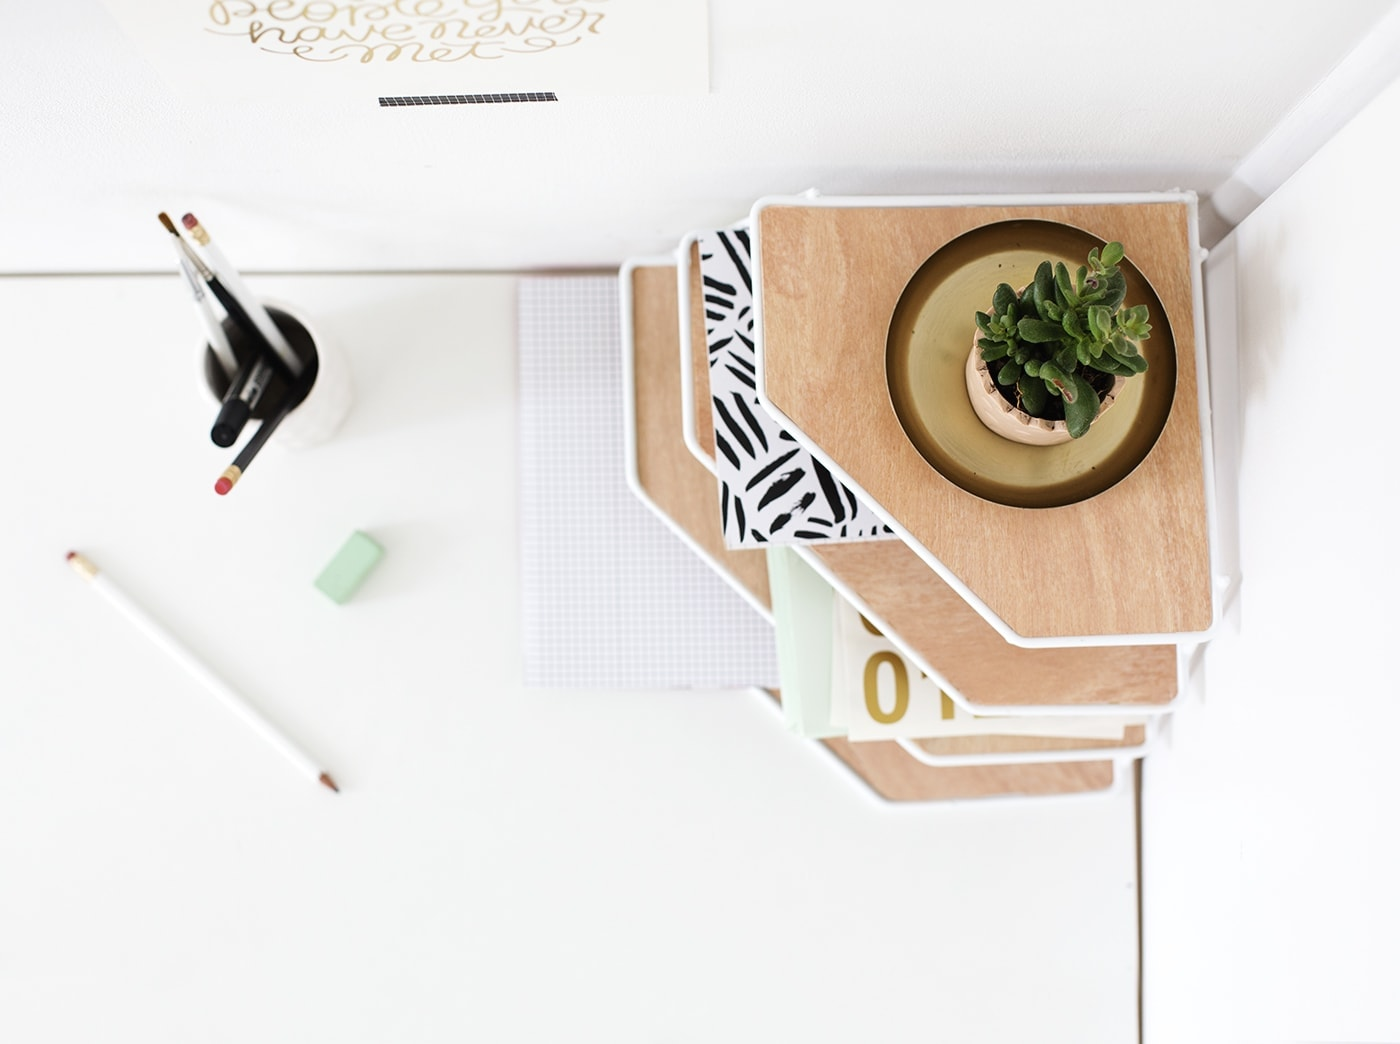 DIY desk organiser tutorial | balsa wood project | add some style to your workspace | the lovely drawer